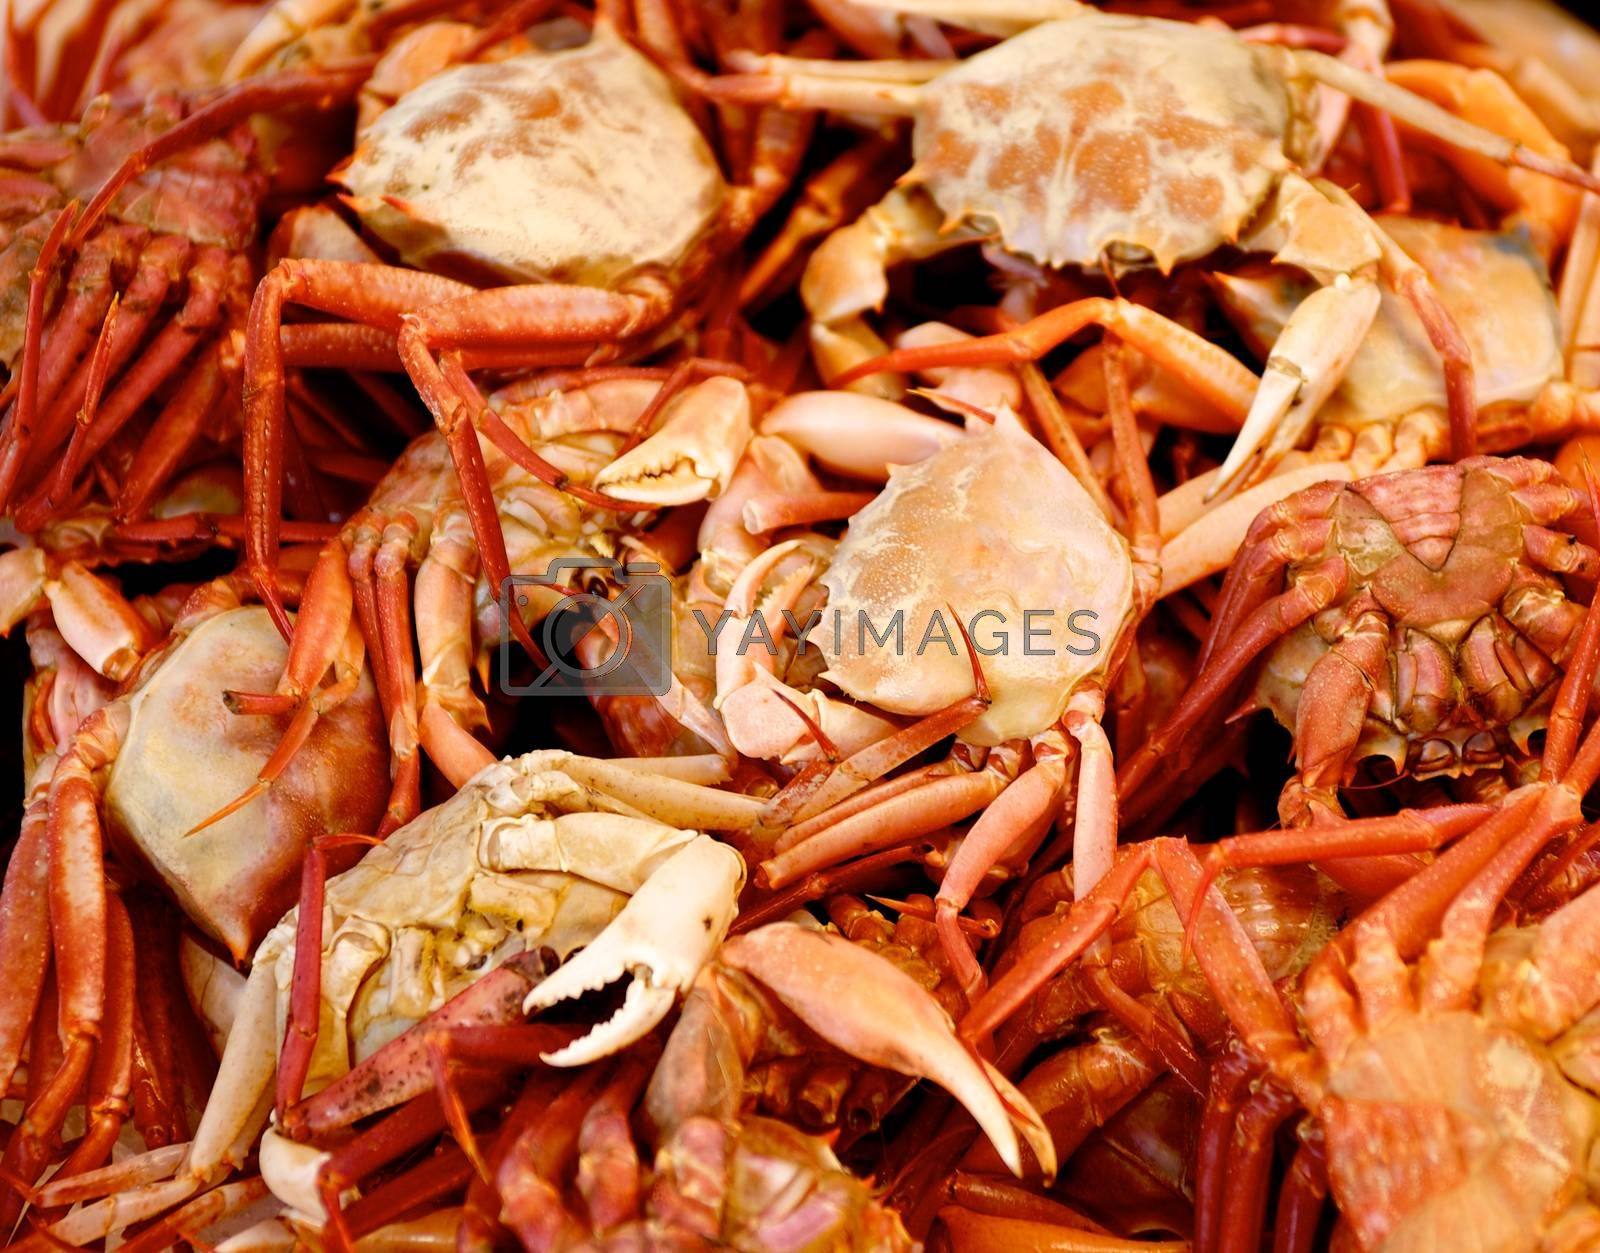 Background of Fresh Raw Mediterranean Red Crab closeup on Seafood Market Outdoors. Selective Focus